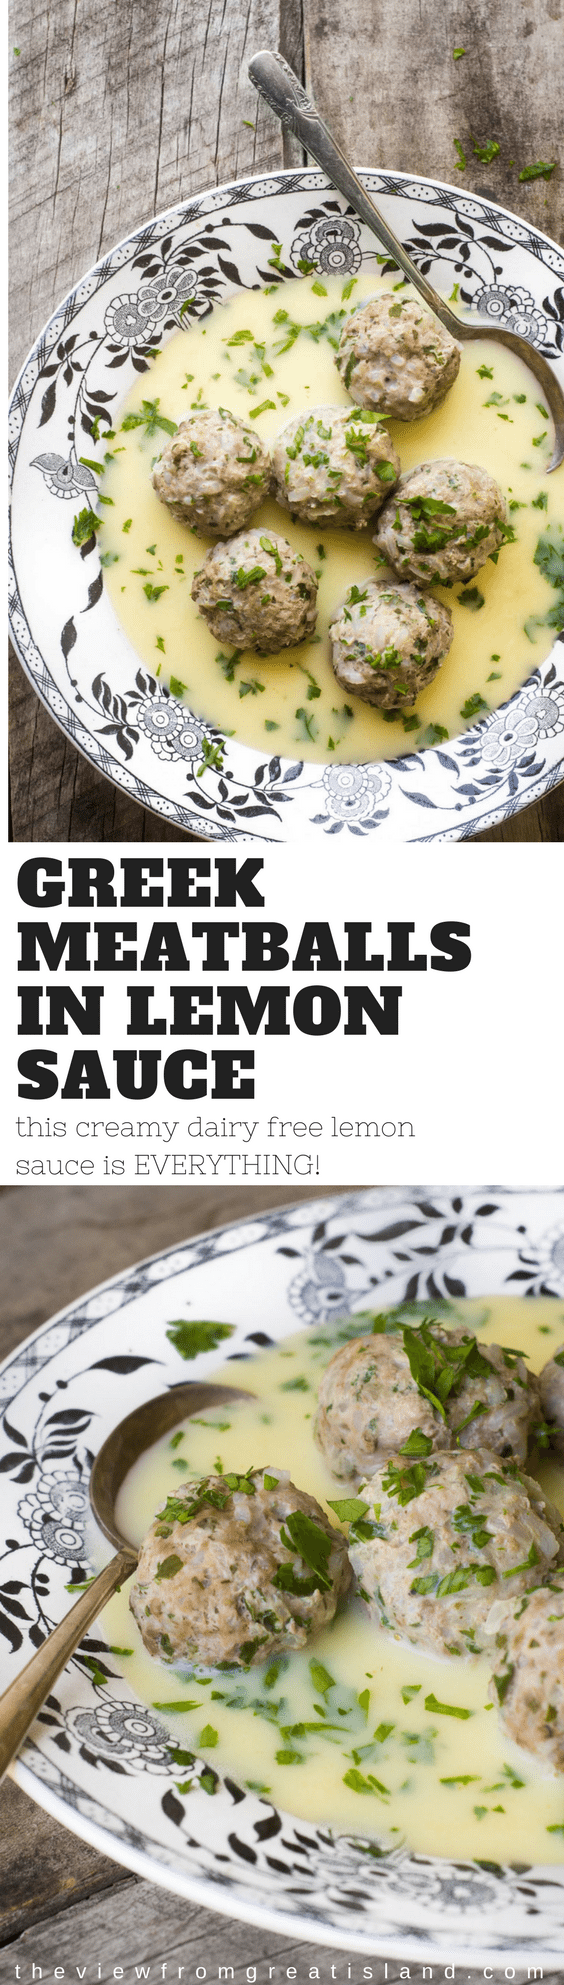 Greek Meatballs in Lemon Sauce is the ideal spring supper --- the herbed meatballs are satisfying but light in texture, and the pale yellow sauce is tangy, silky, and utterly luxurious without any cream or butter whatsoever. #Greek #meatballs #lemon #dinner #pork #lamb #Mediterranean #lemonsauce